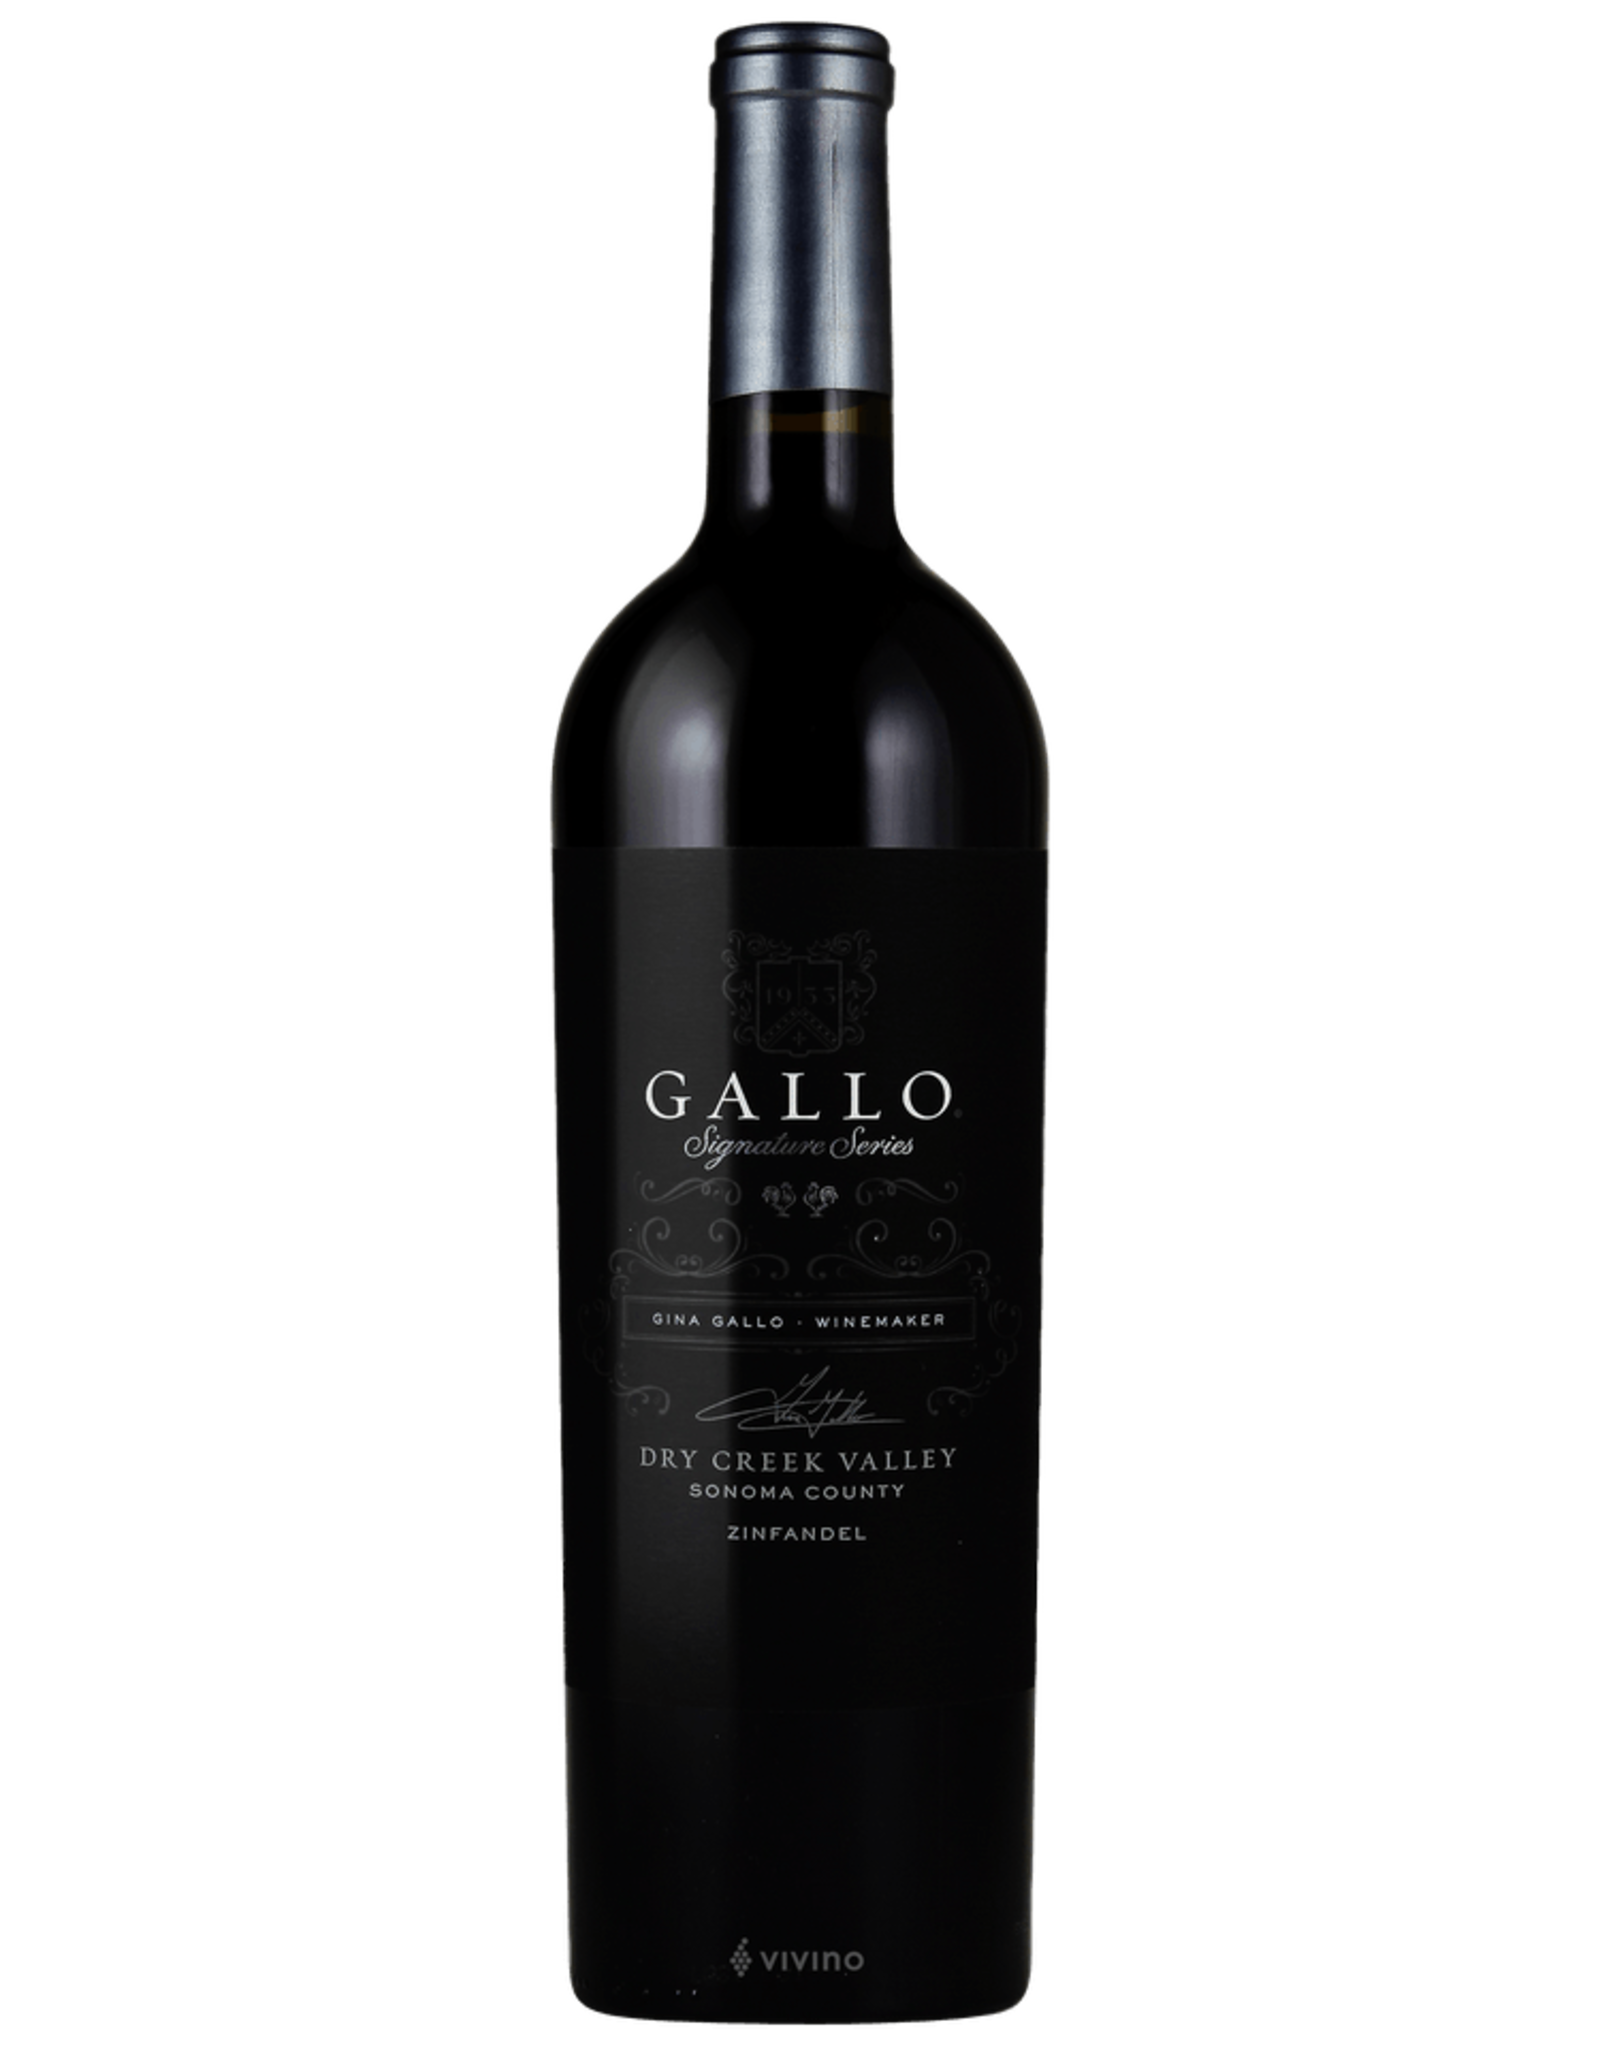 Gallo Dry Creek 'Signature Series' Zinfandel 2012